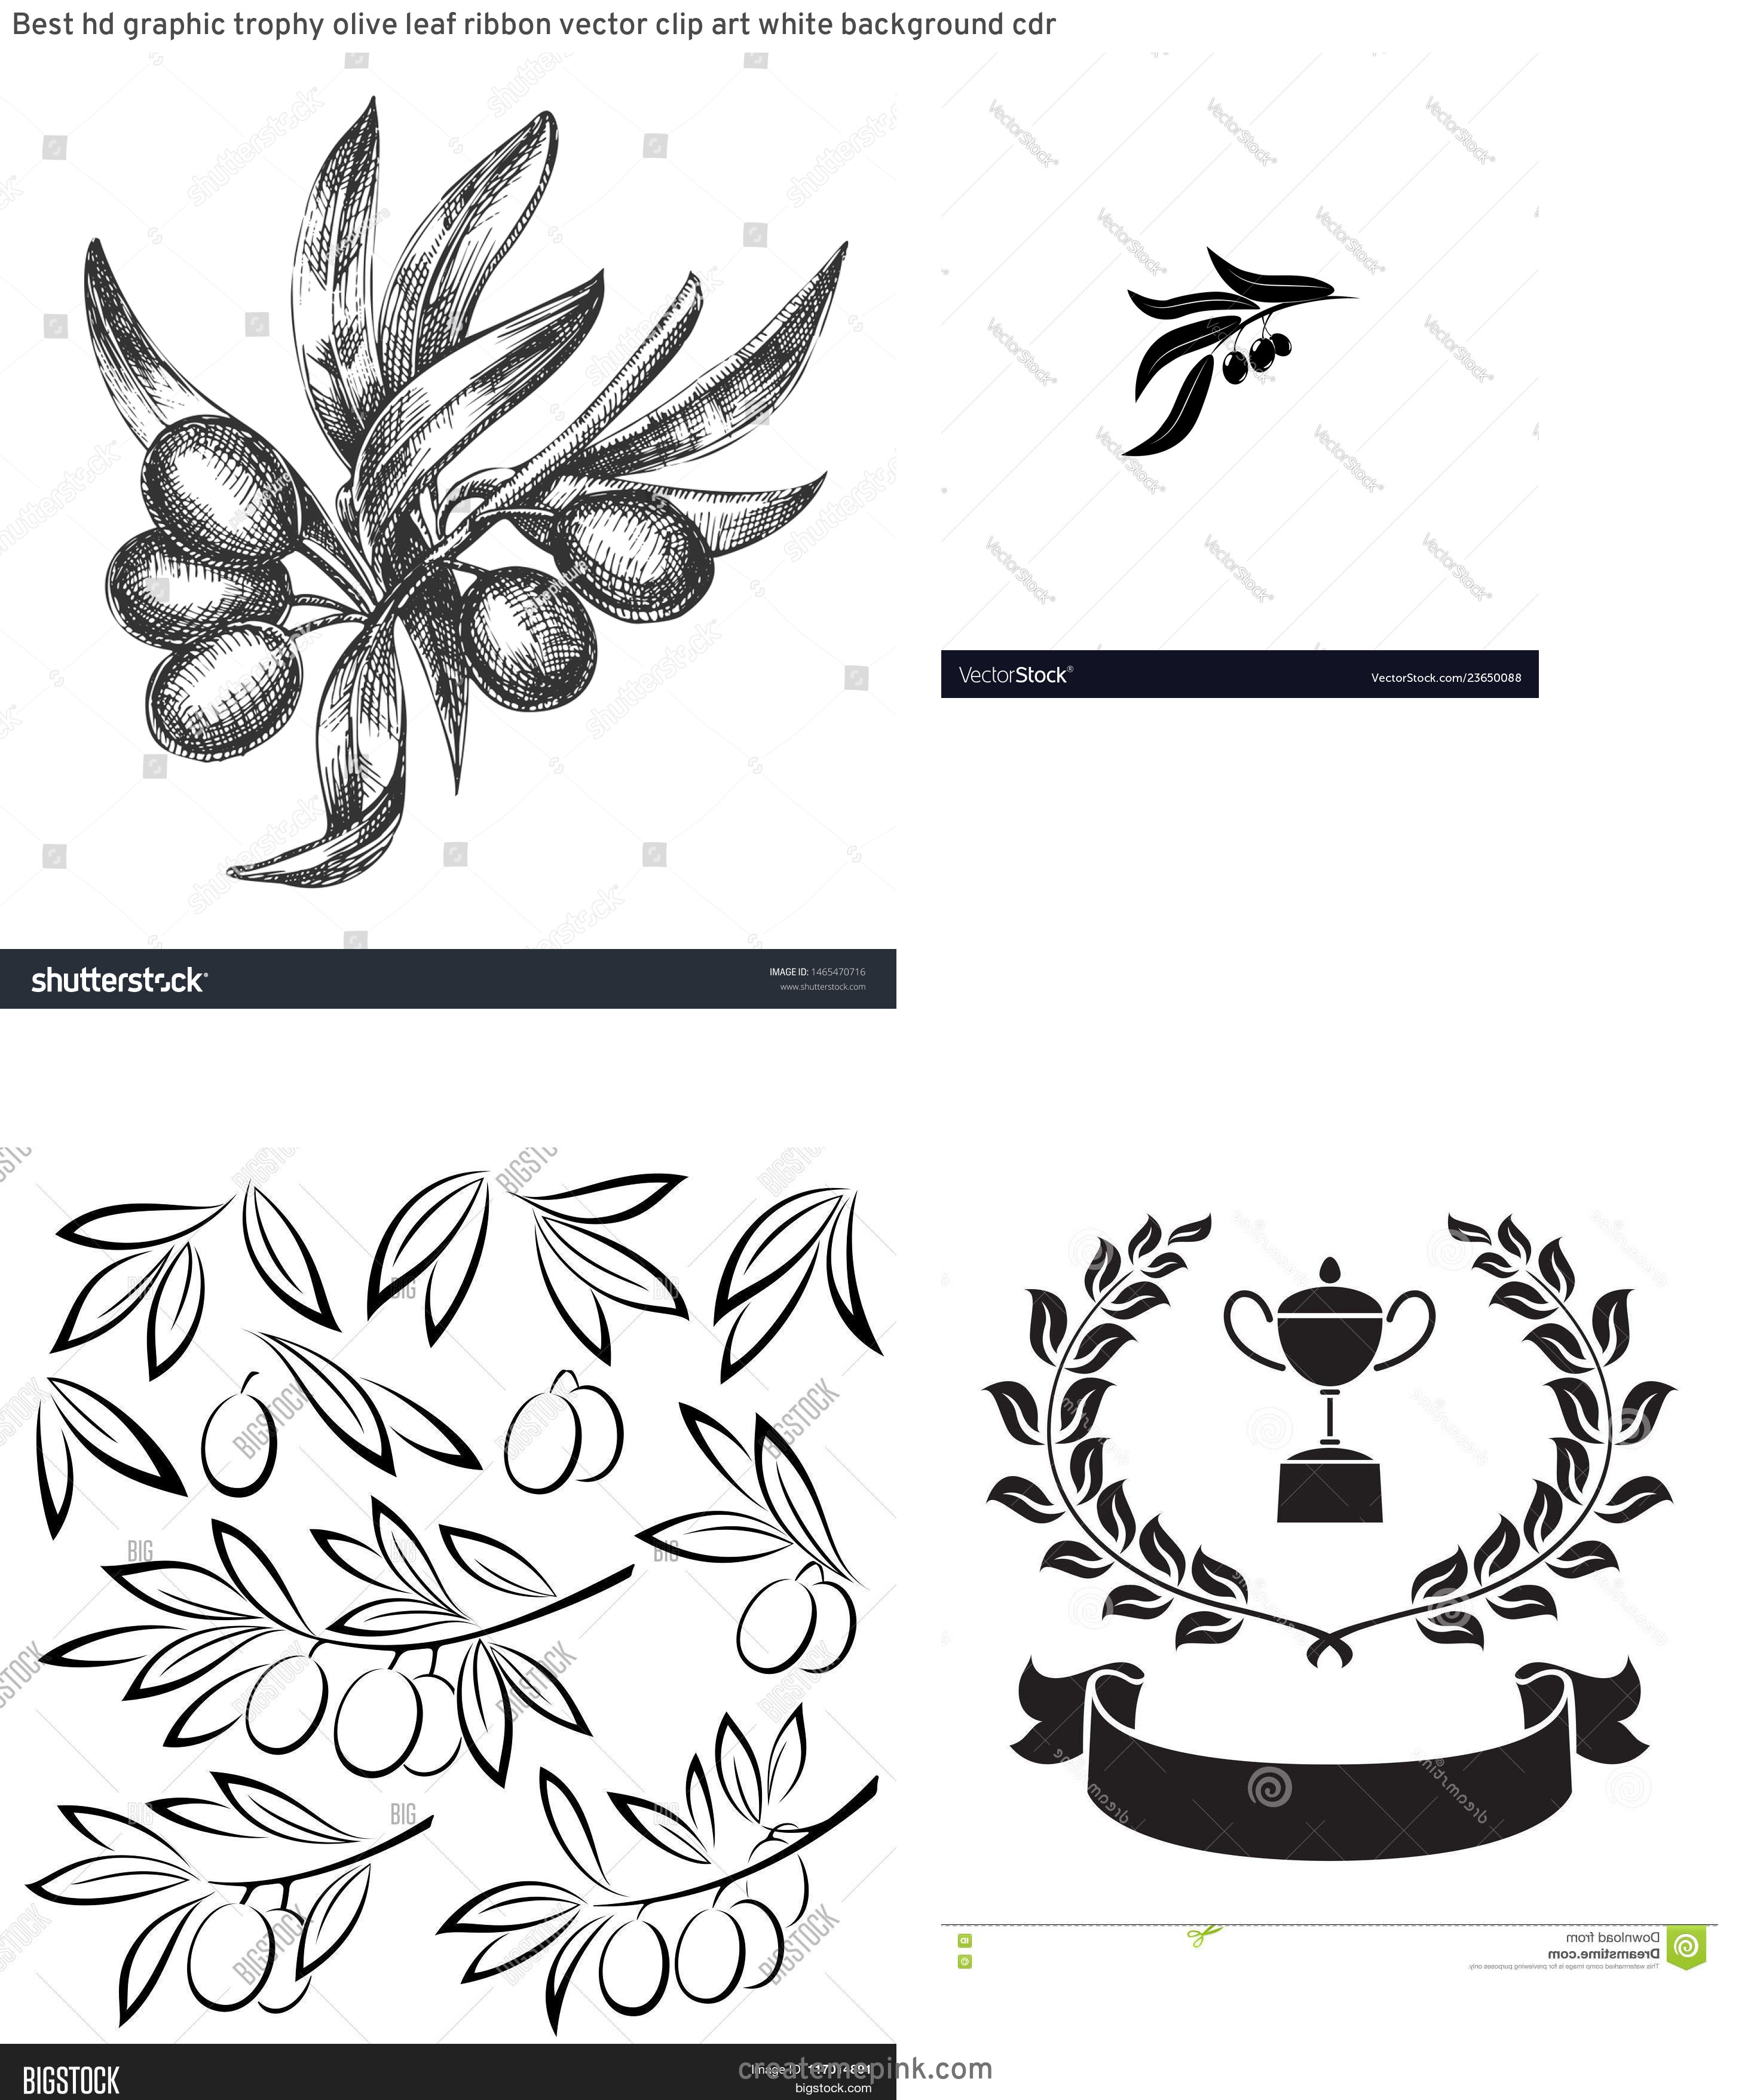 Olive Black And White Vector Leaves: Best Hd Graphic Trophy Olive Leaf Ribbon Vector Clip Art White Background Cdr